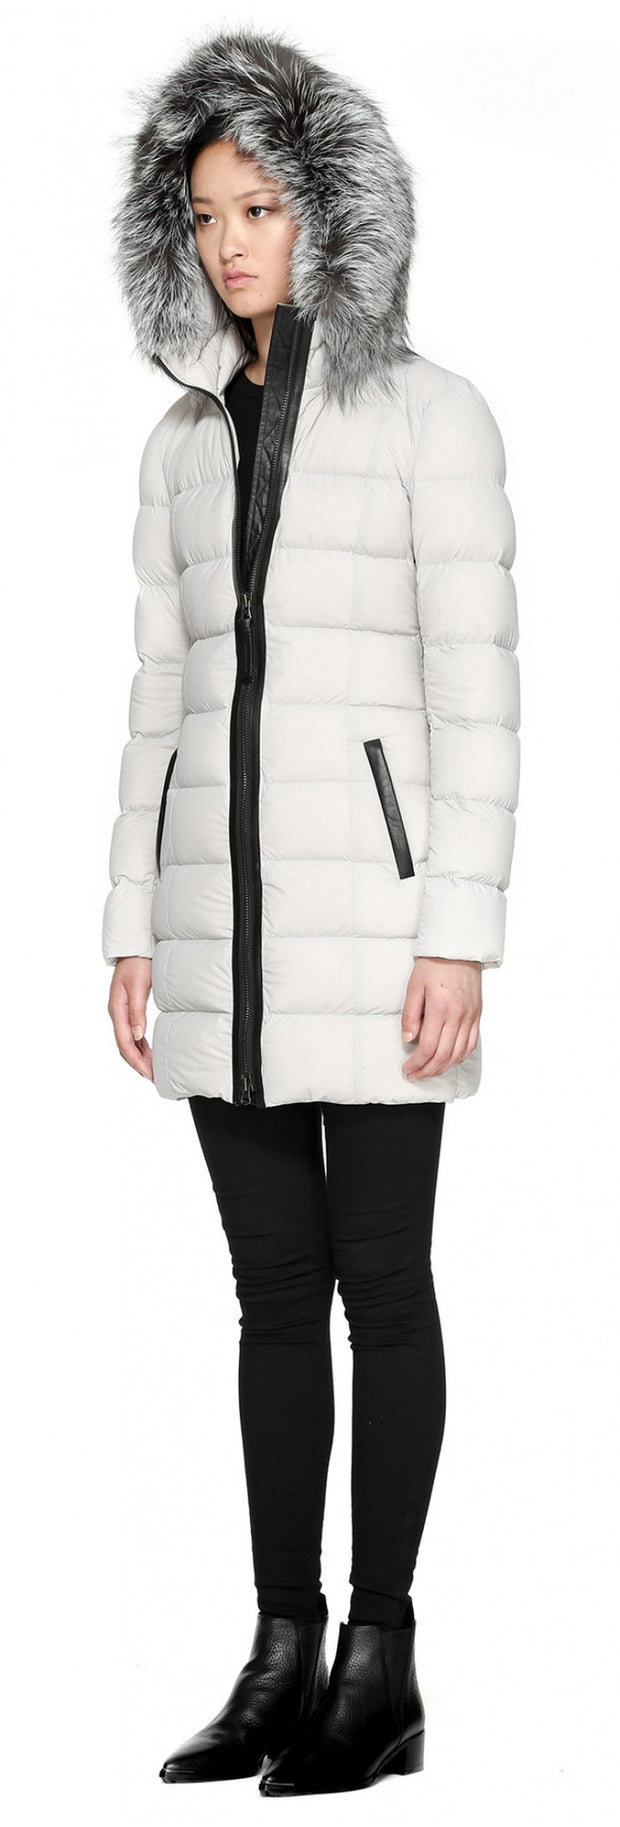 Mackage Mackage- Calla Coat Cloud at Blond Genius - 3